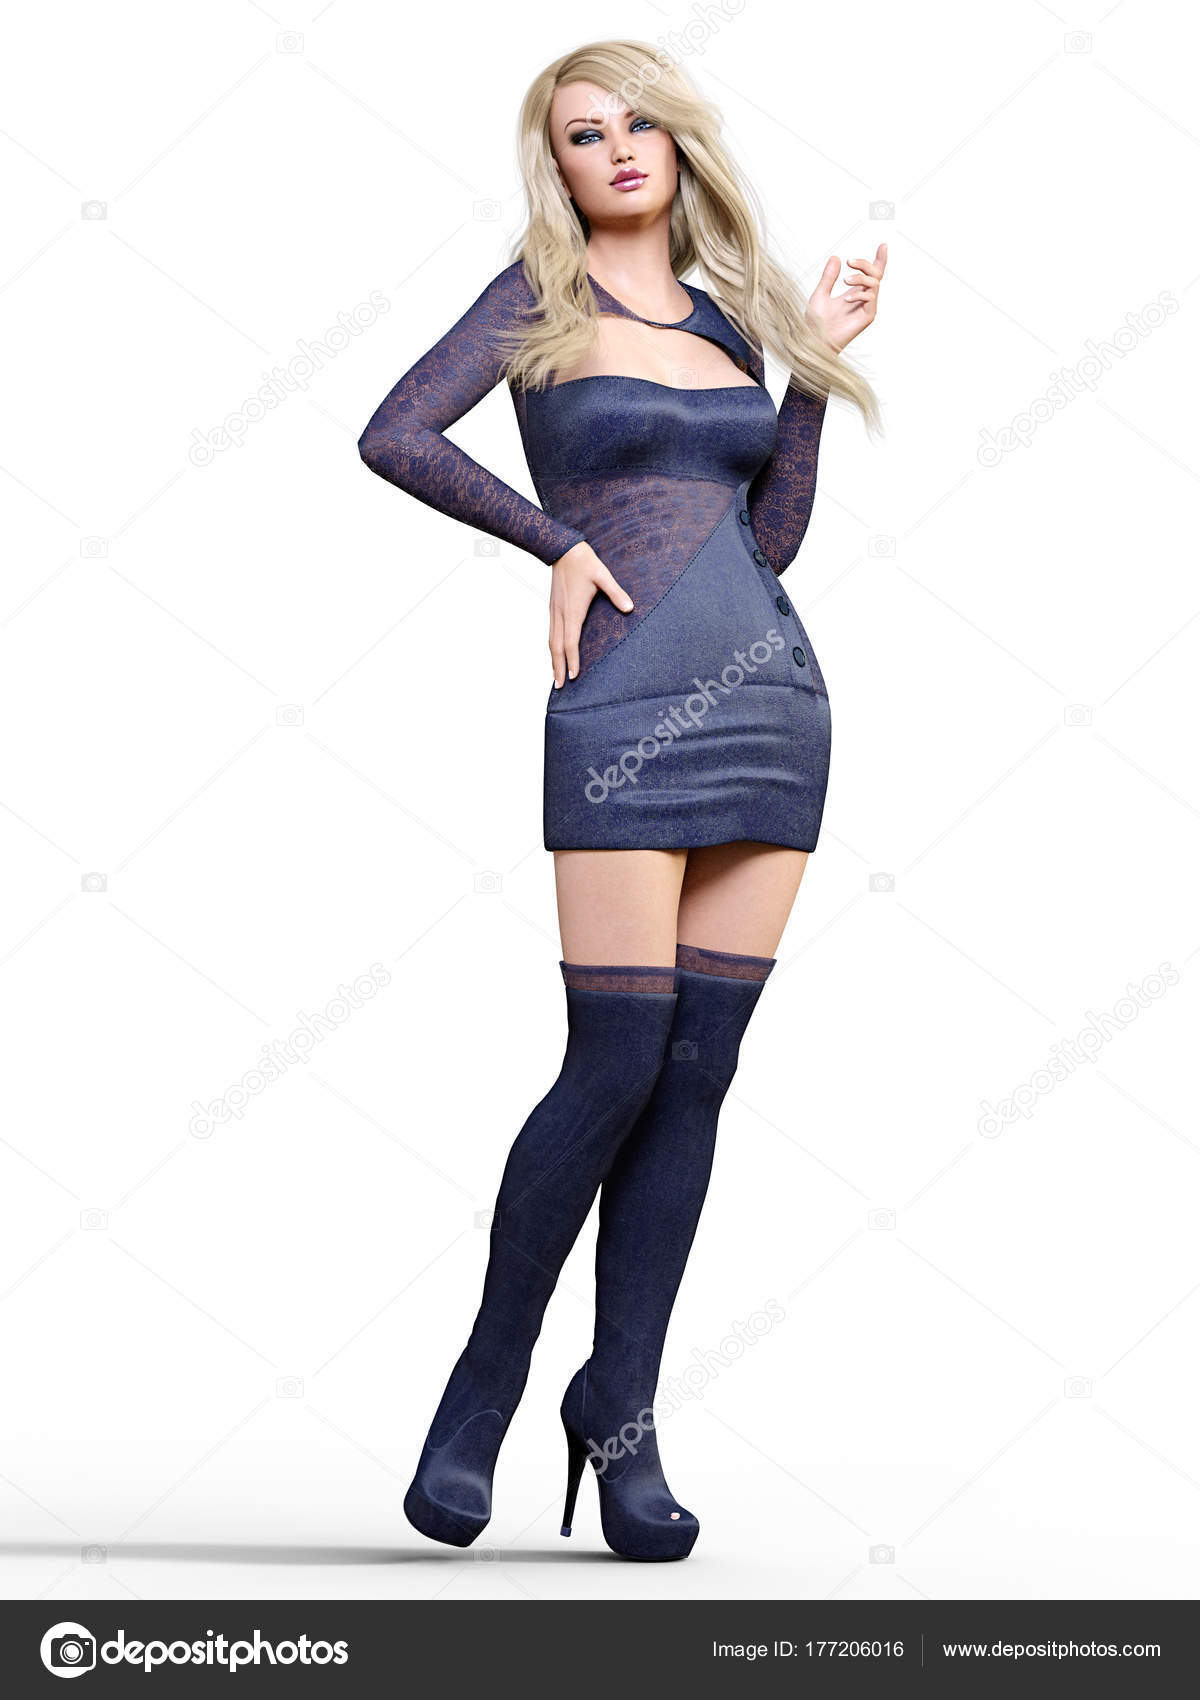 short dress and boots